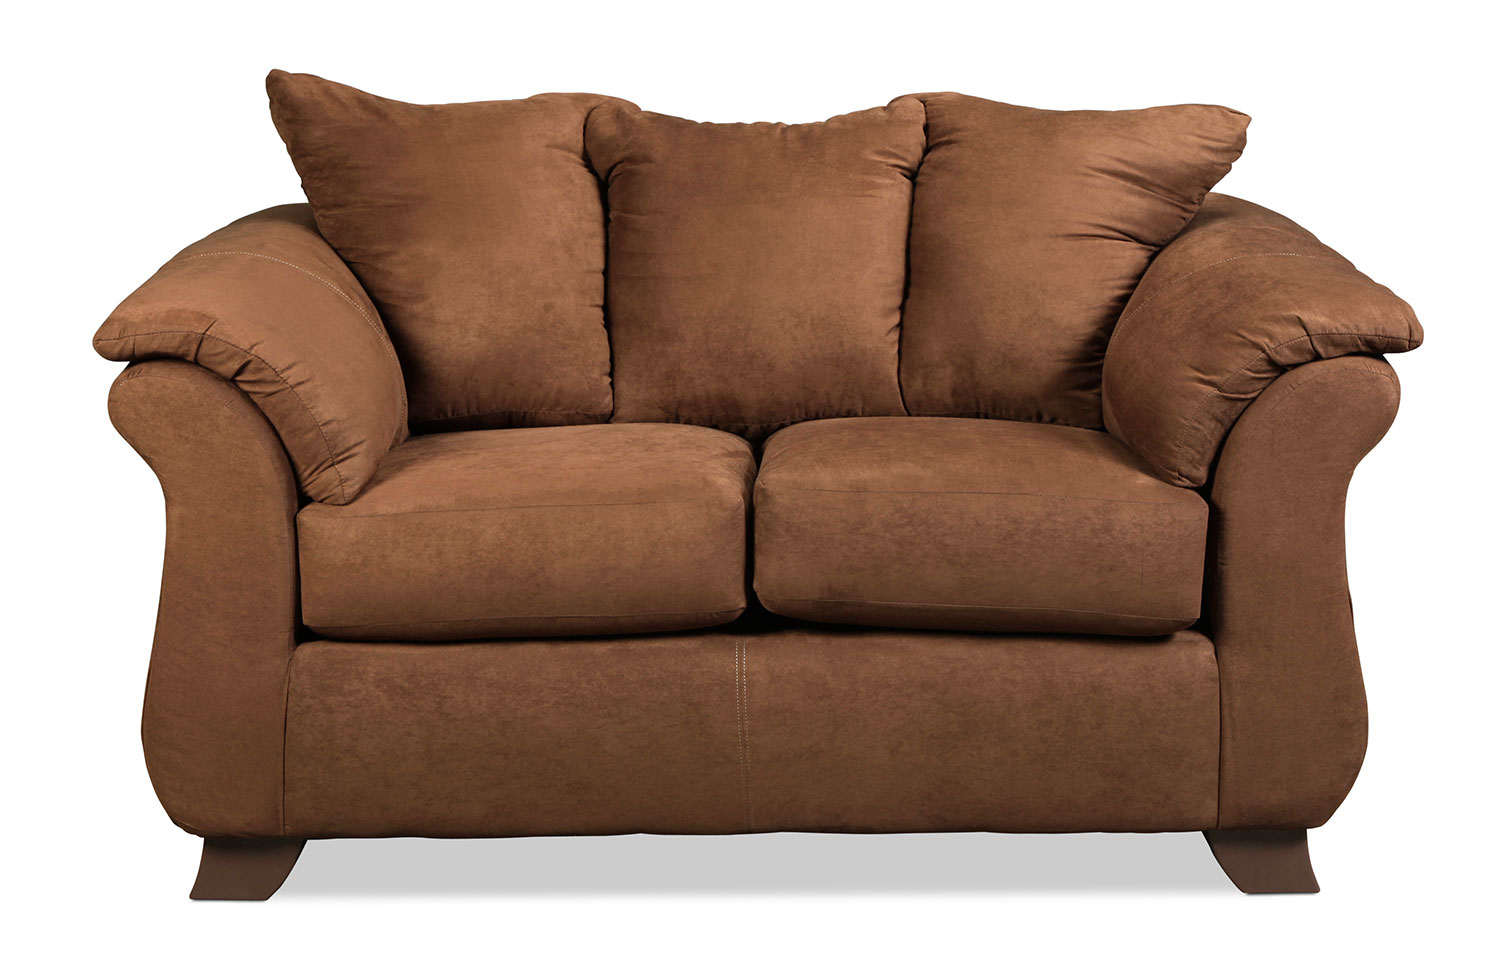 Shelby Loveseat - Chocolate